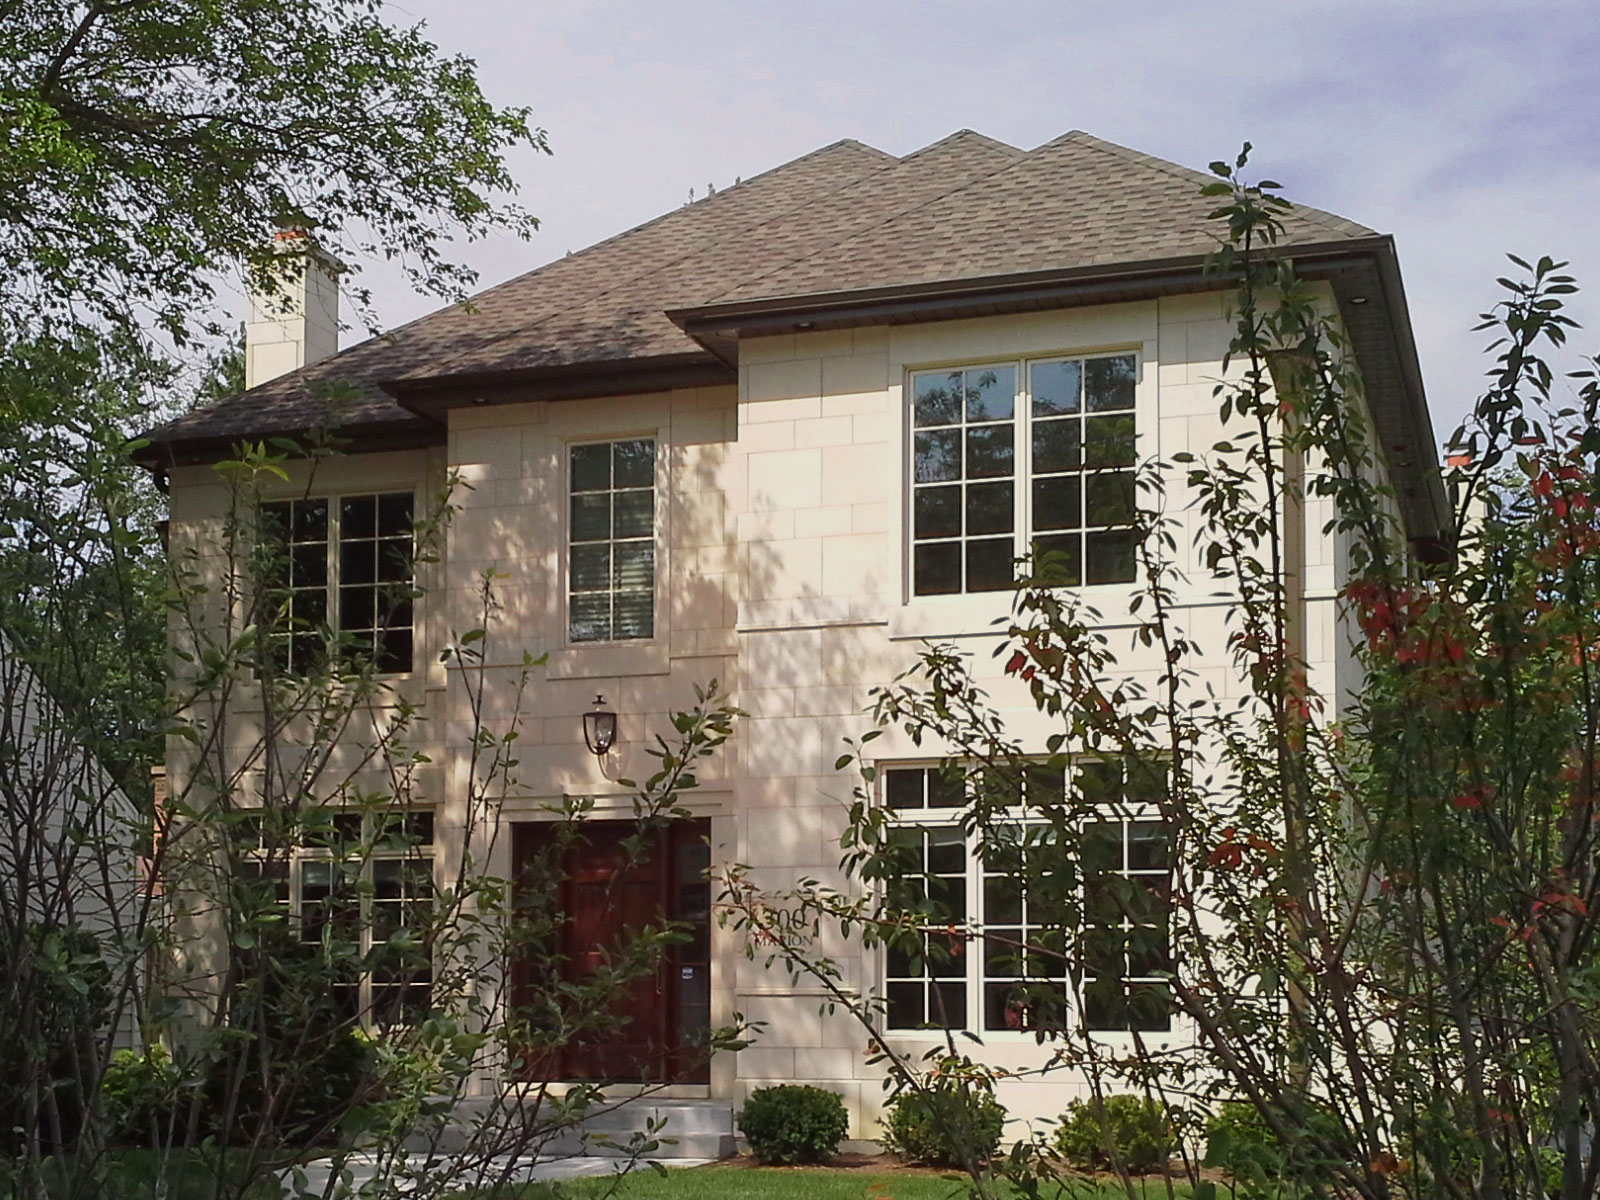 New Construction French Manor styled home with cut stone exterior in Elmhurst, IL.